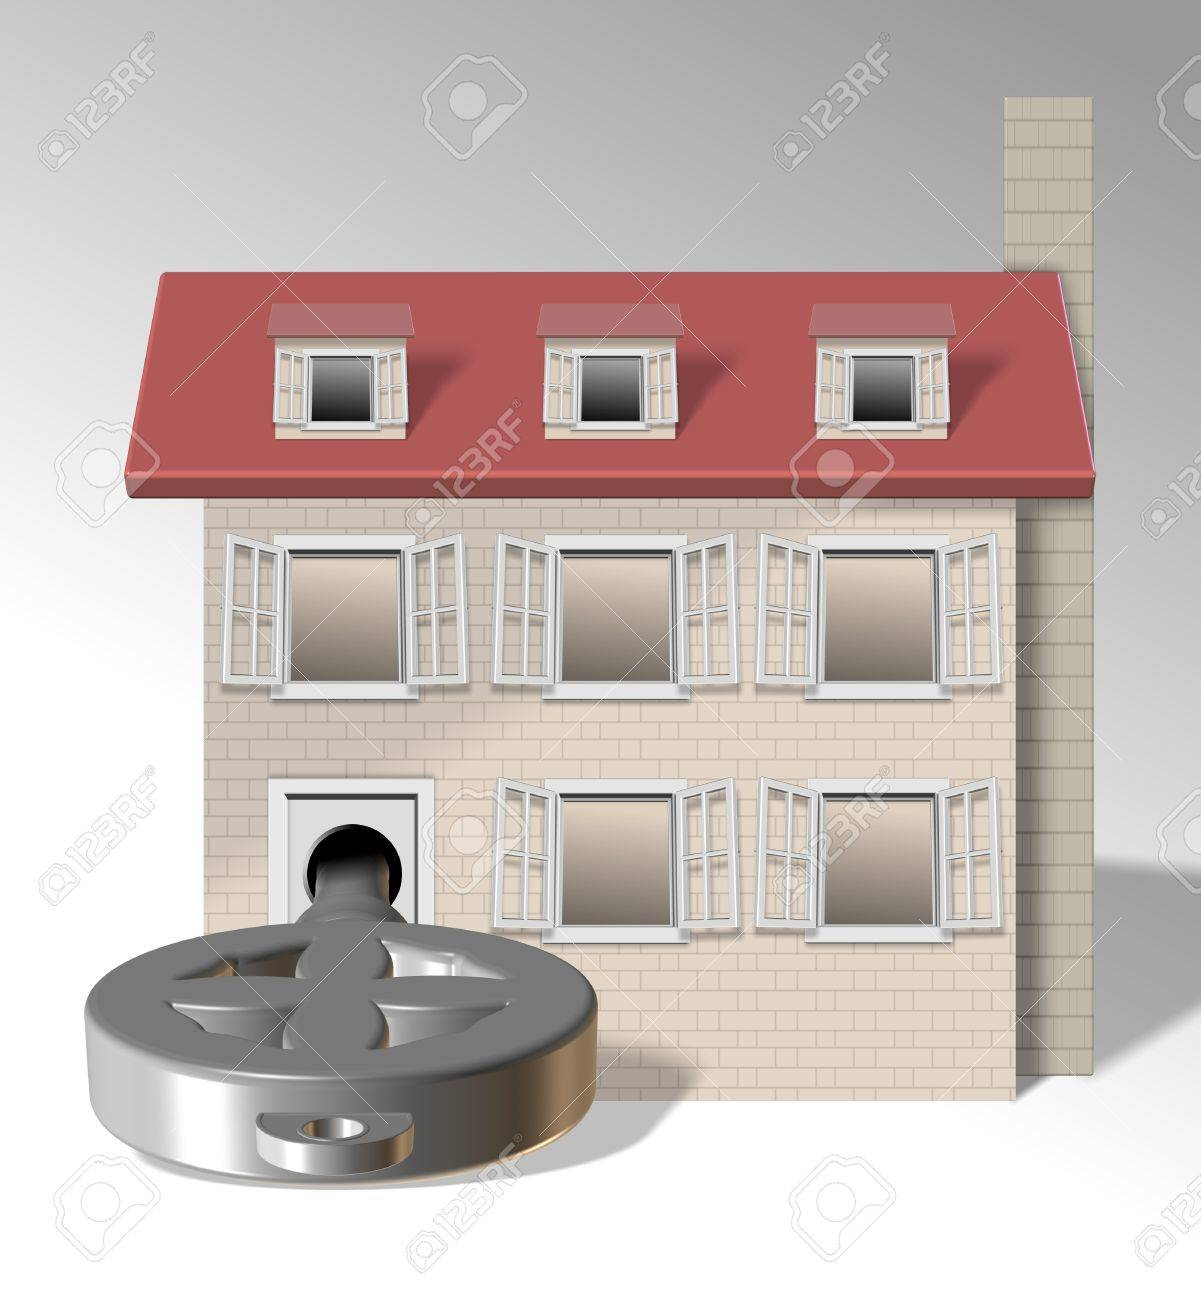 an illustration of a family home with a big key in front of it Stock Photo - 13035308